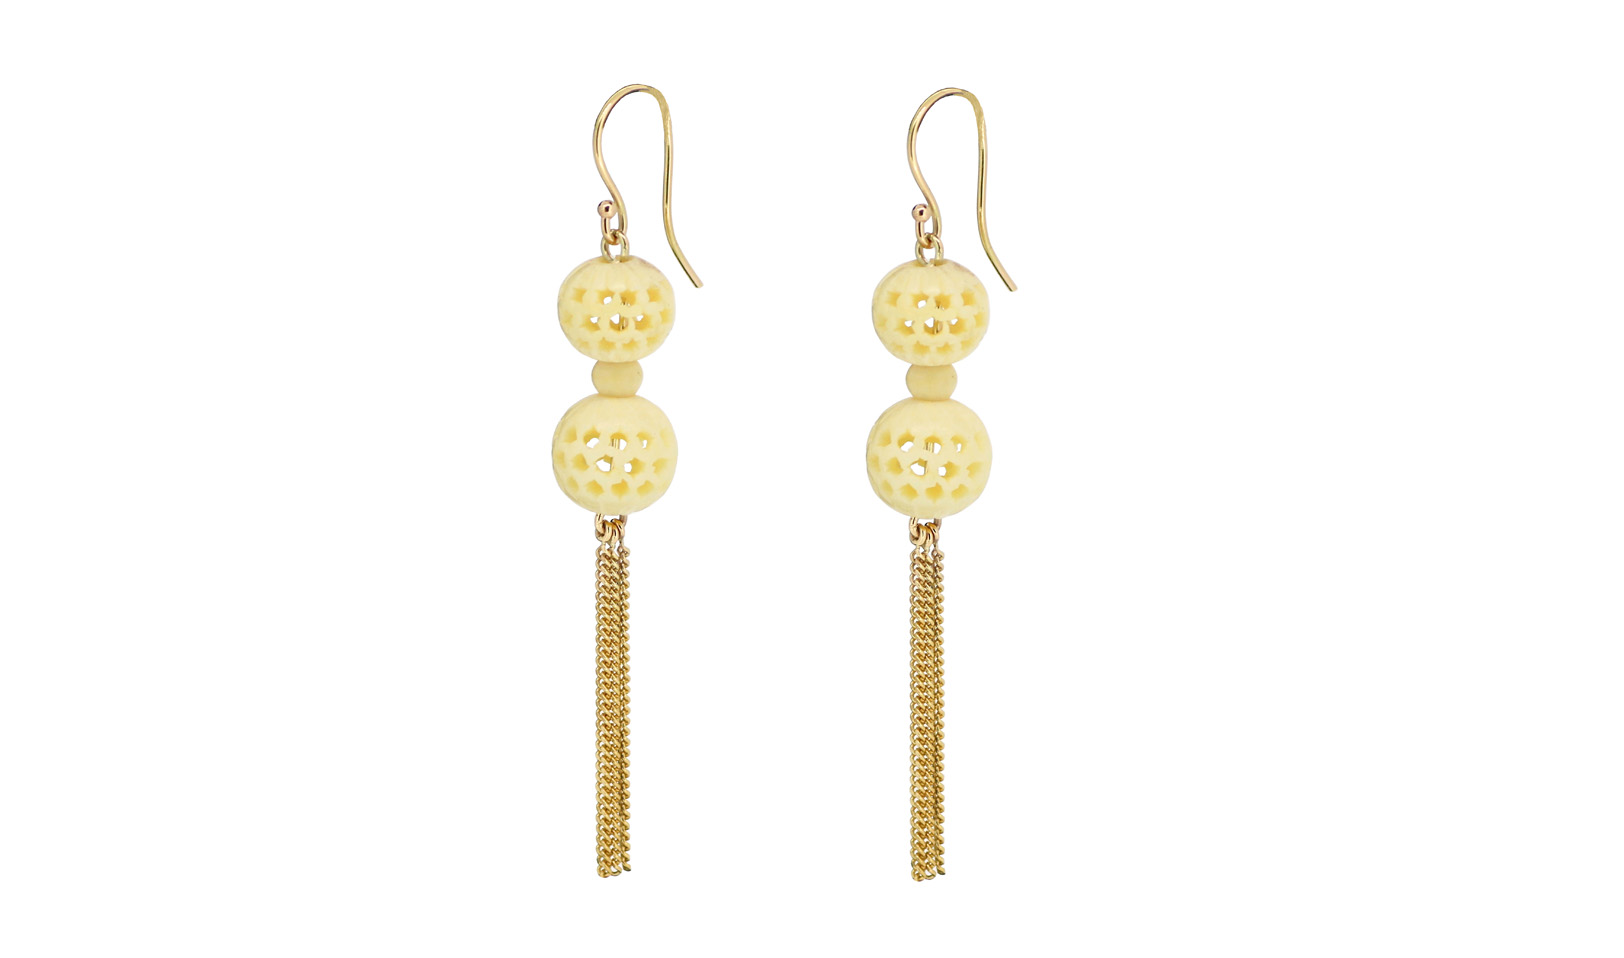 Antique Carved Ball and Gold Tassle Earrings